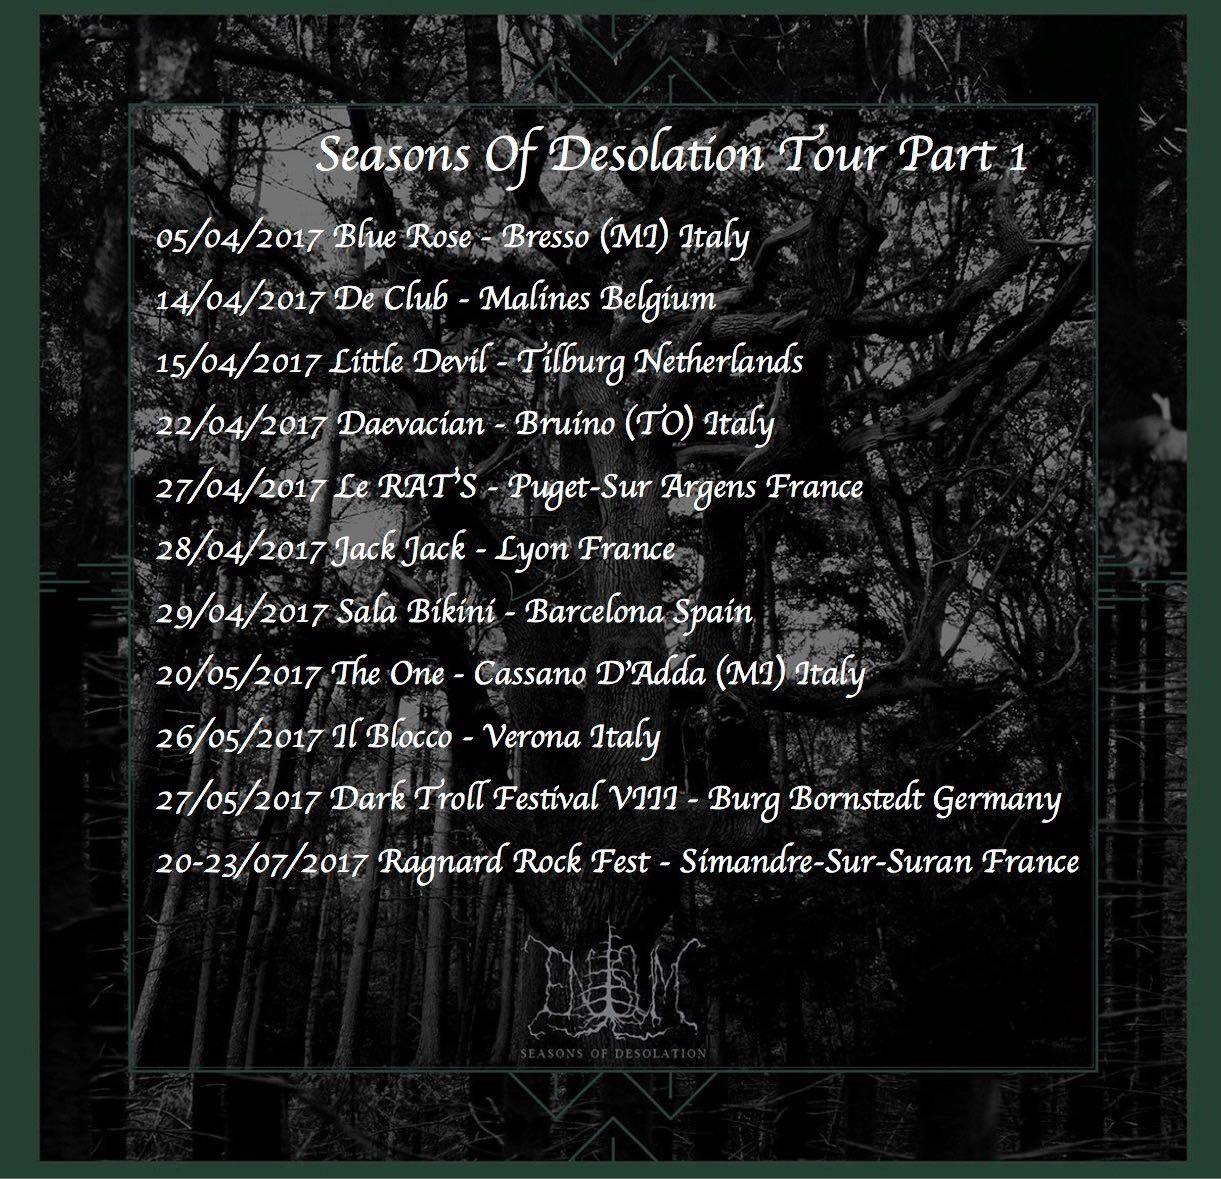 seasons-of-desolation-tour